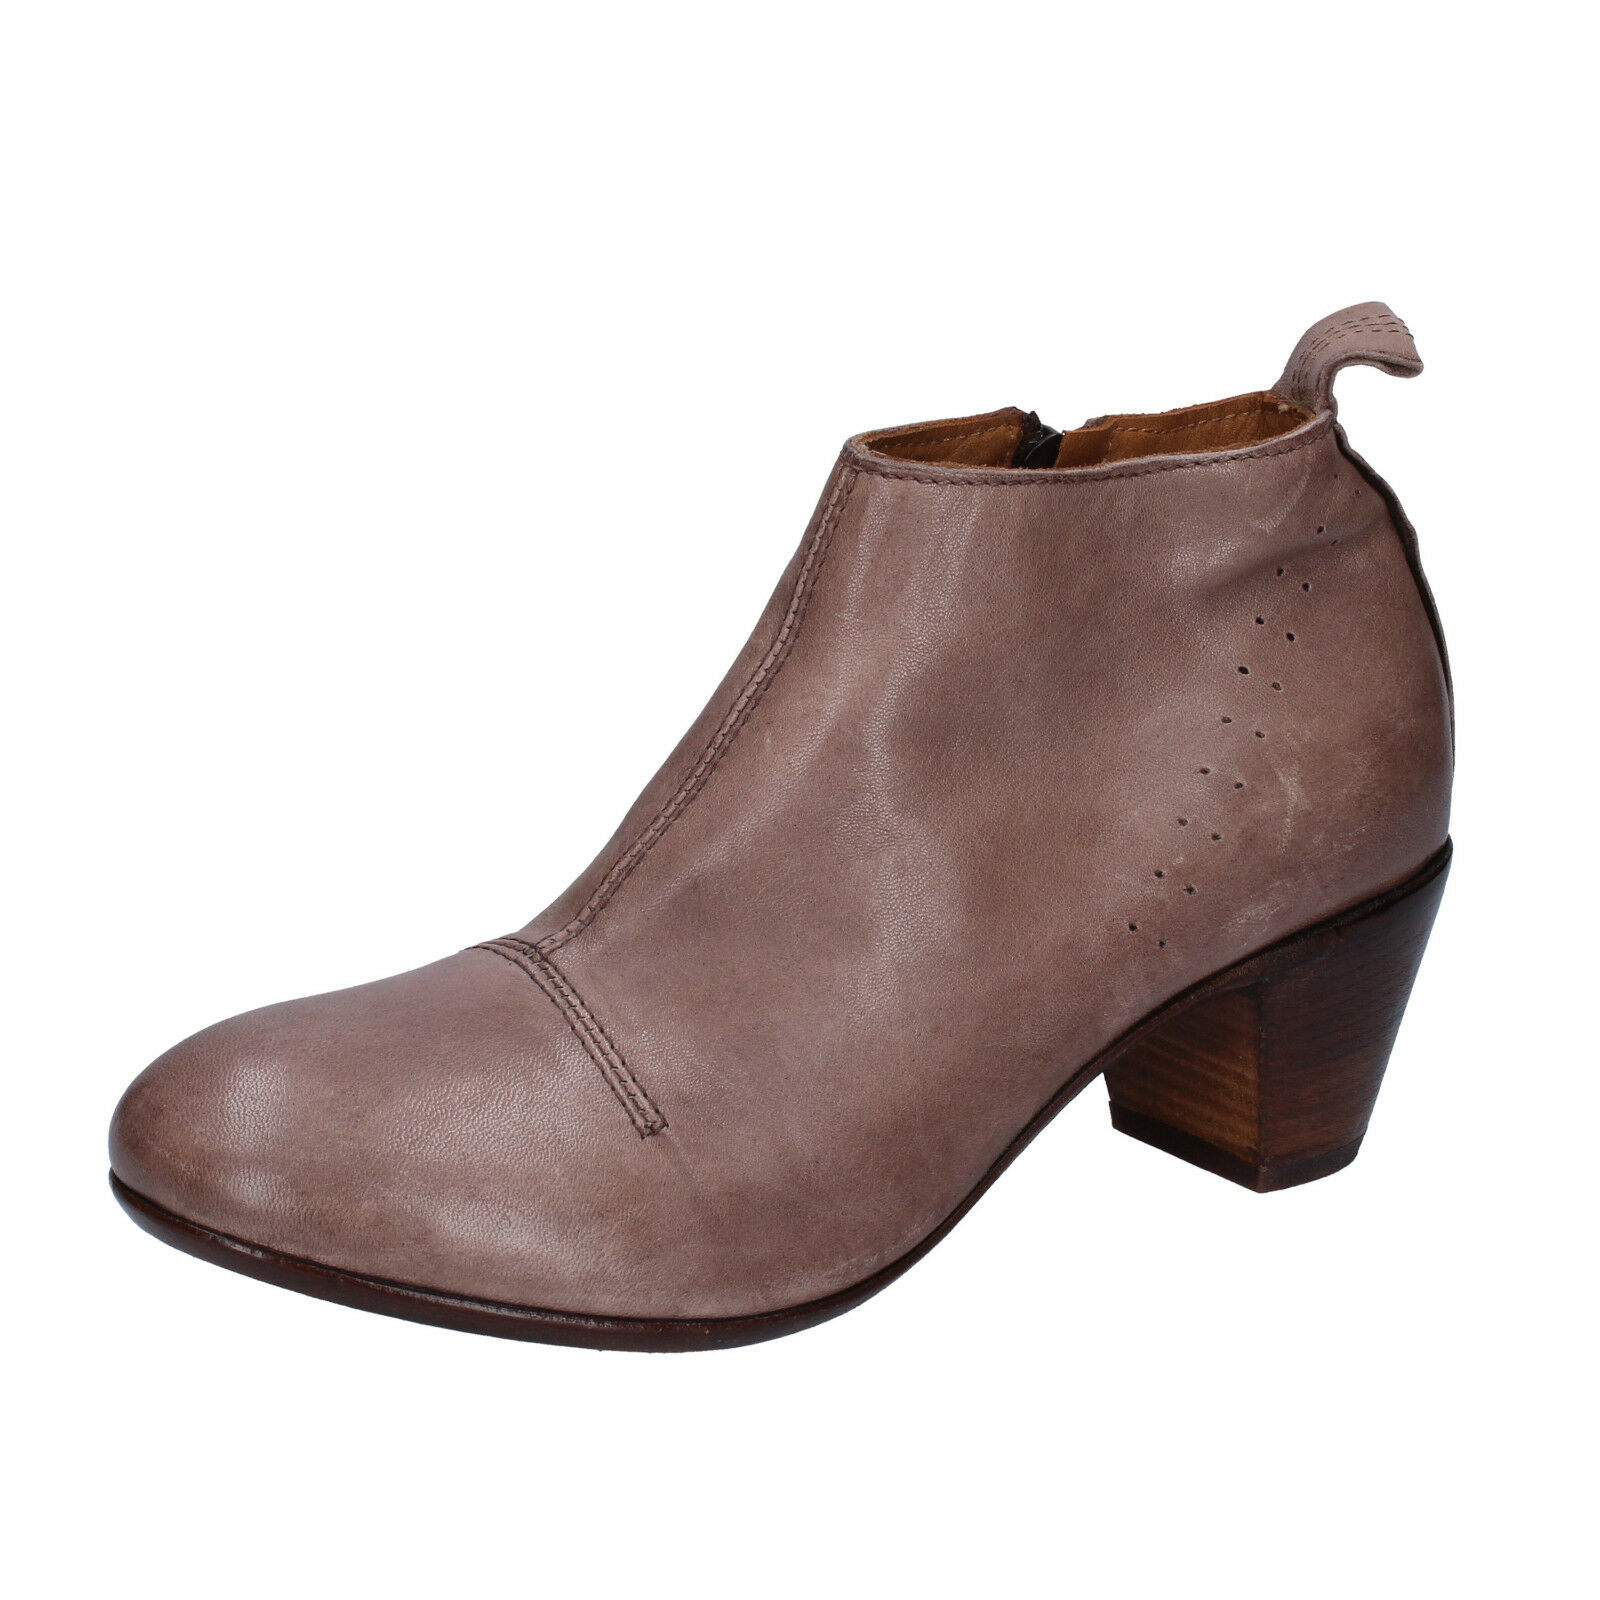 women's shoes MOMA 7 () ankle boots brown leather BT155-37